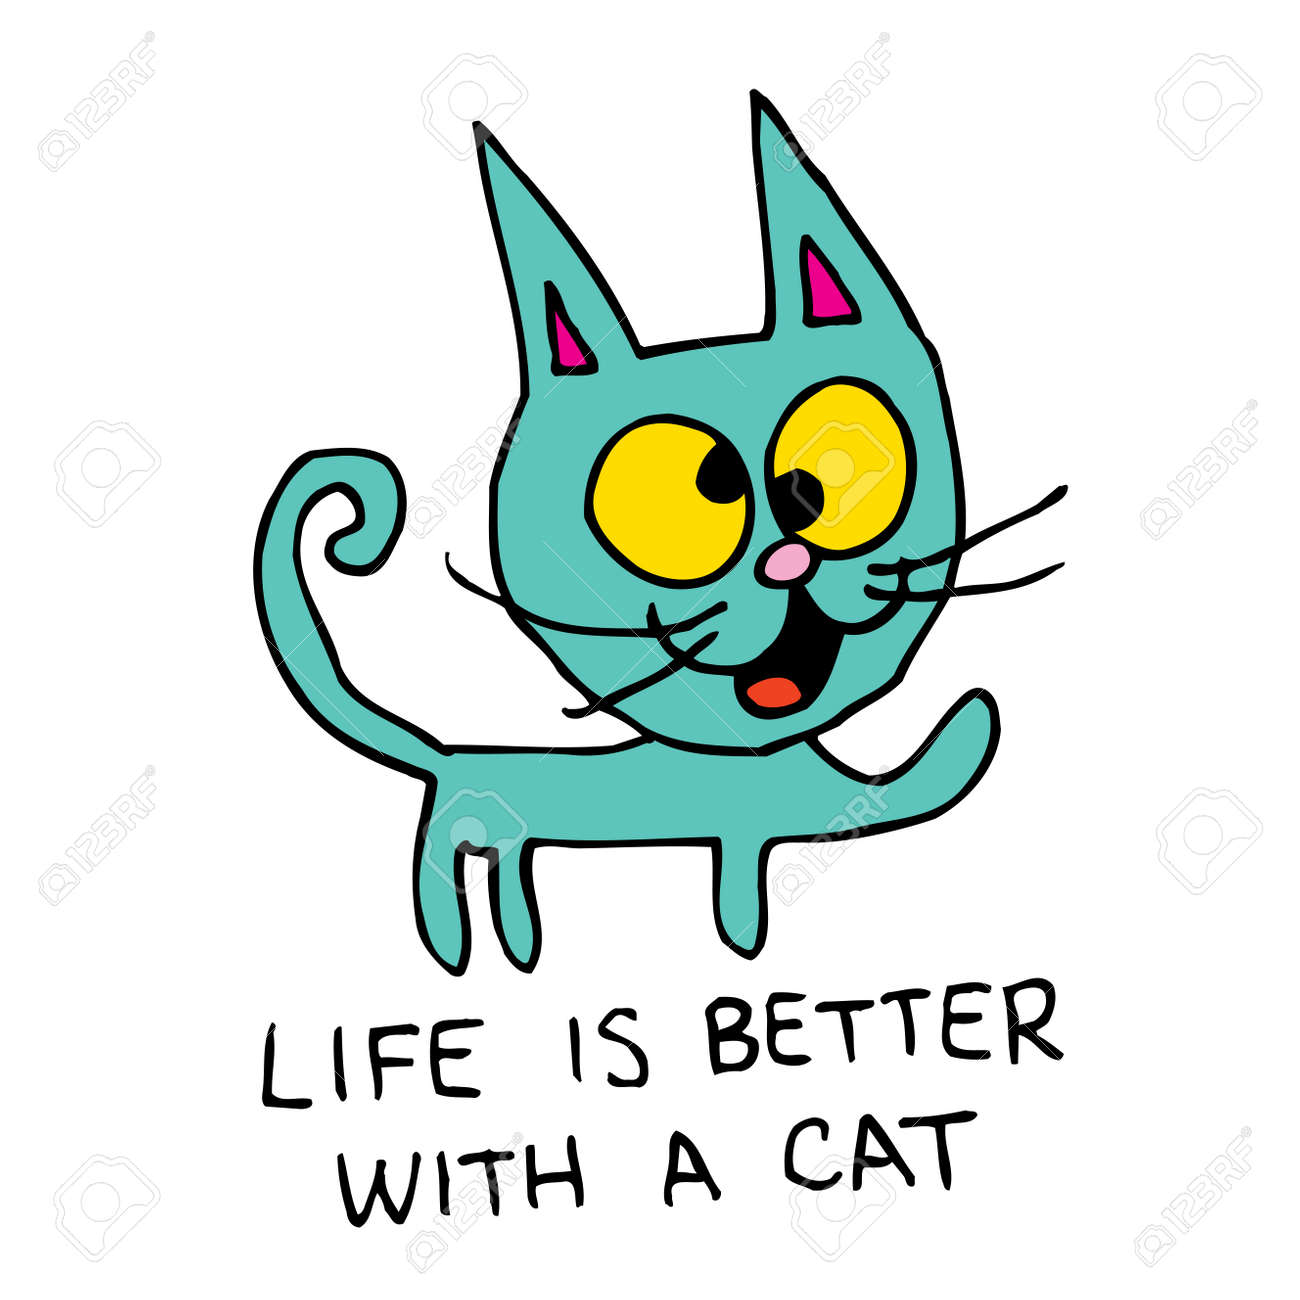 Life is better with a cat - 120787241